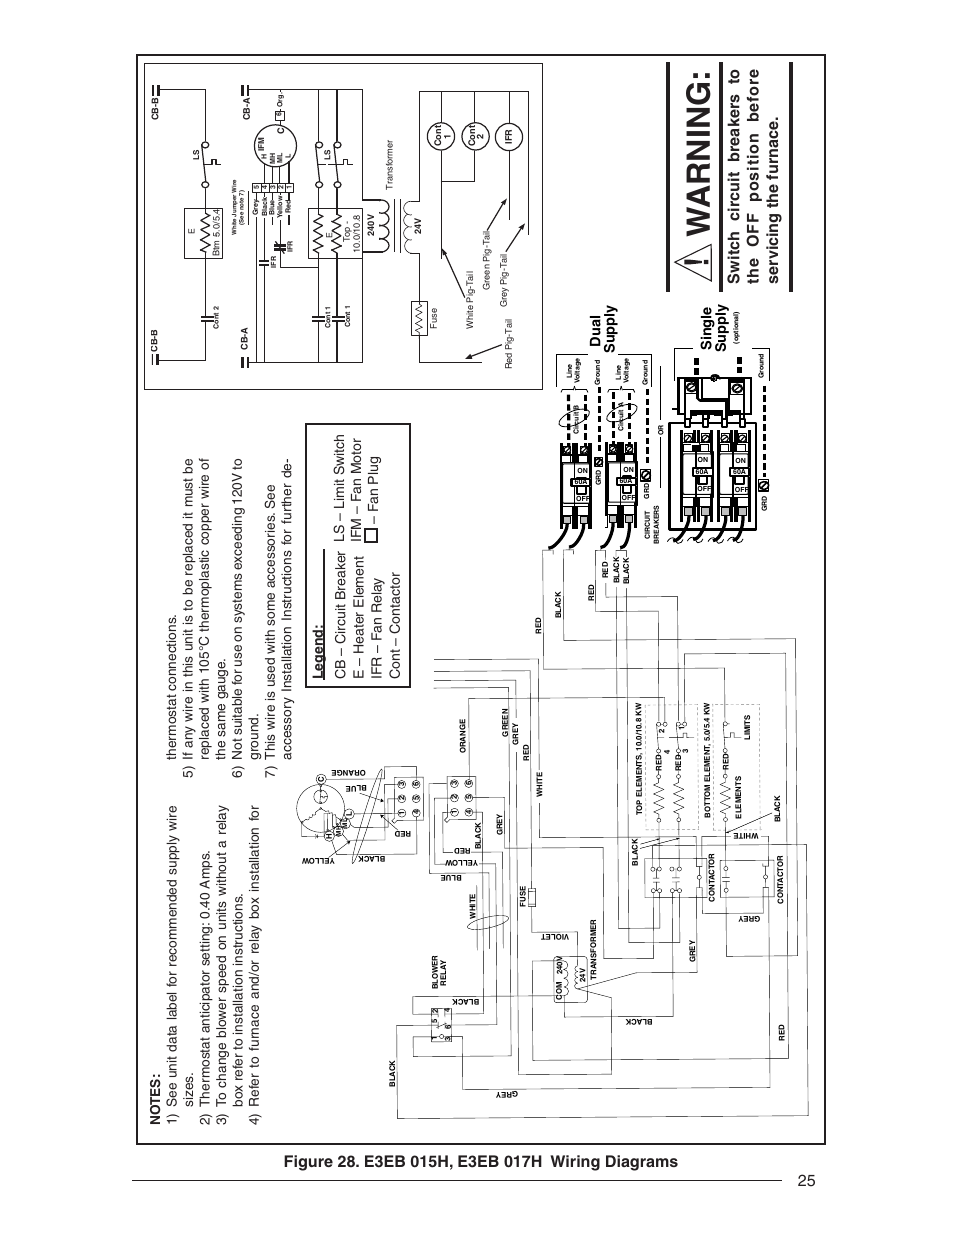 nordyne wiring diagram factory home nordyne get free image about wiring diagram